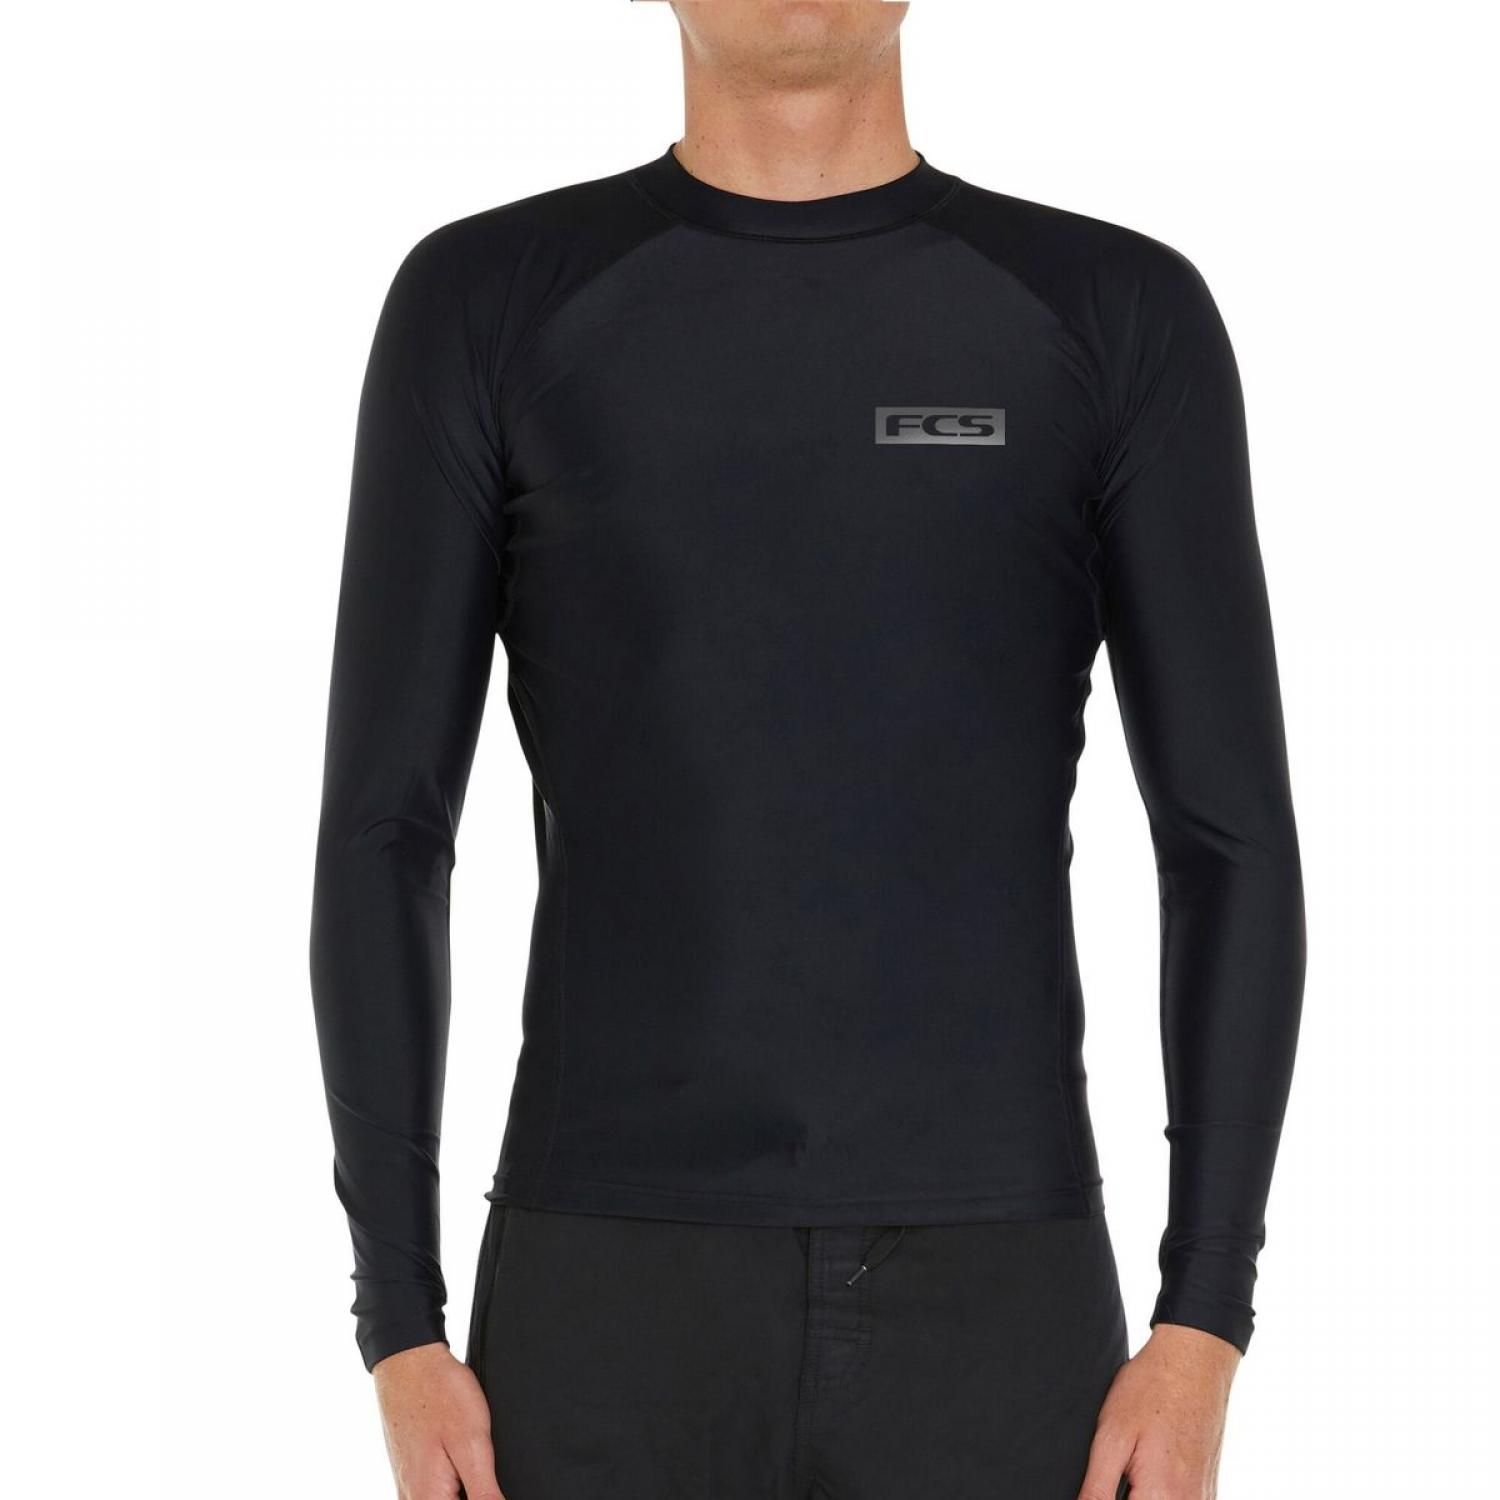 FCS LONG SLEEVE RASH VEST